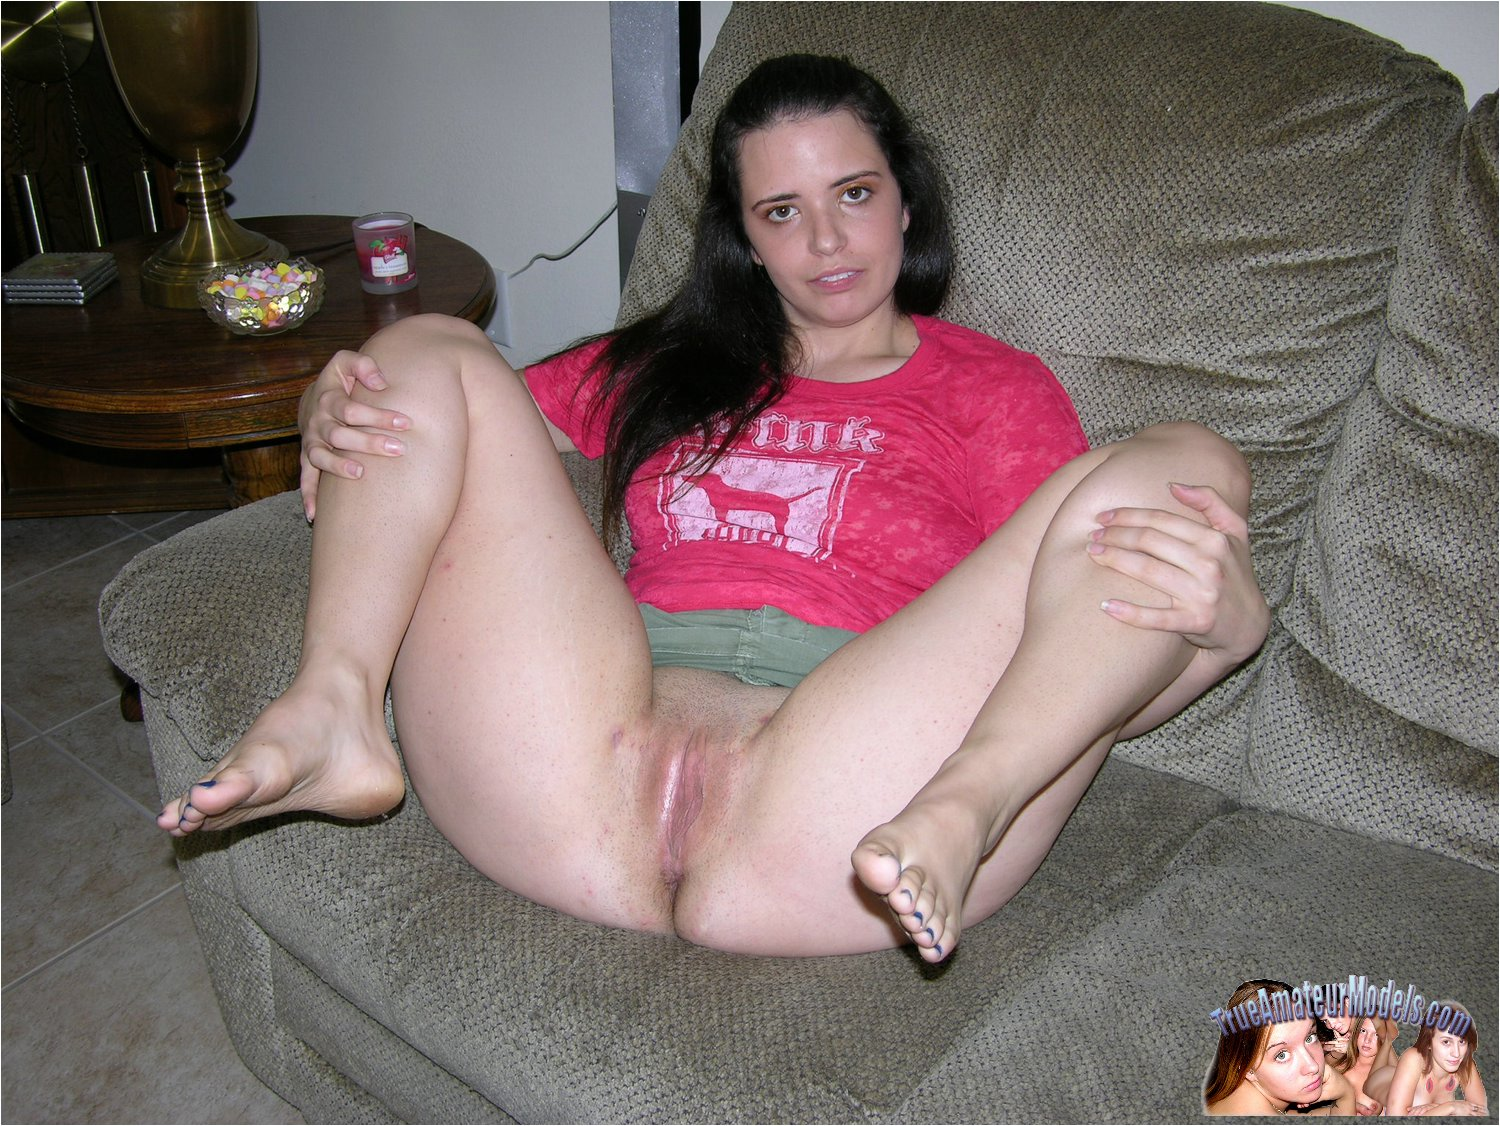 Pussy spread college girl amateur